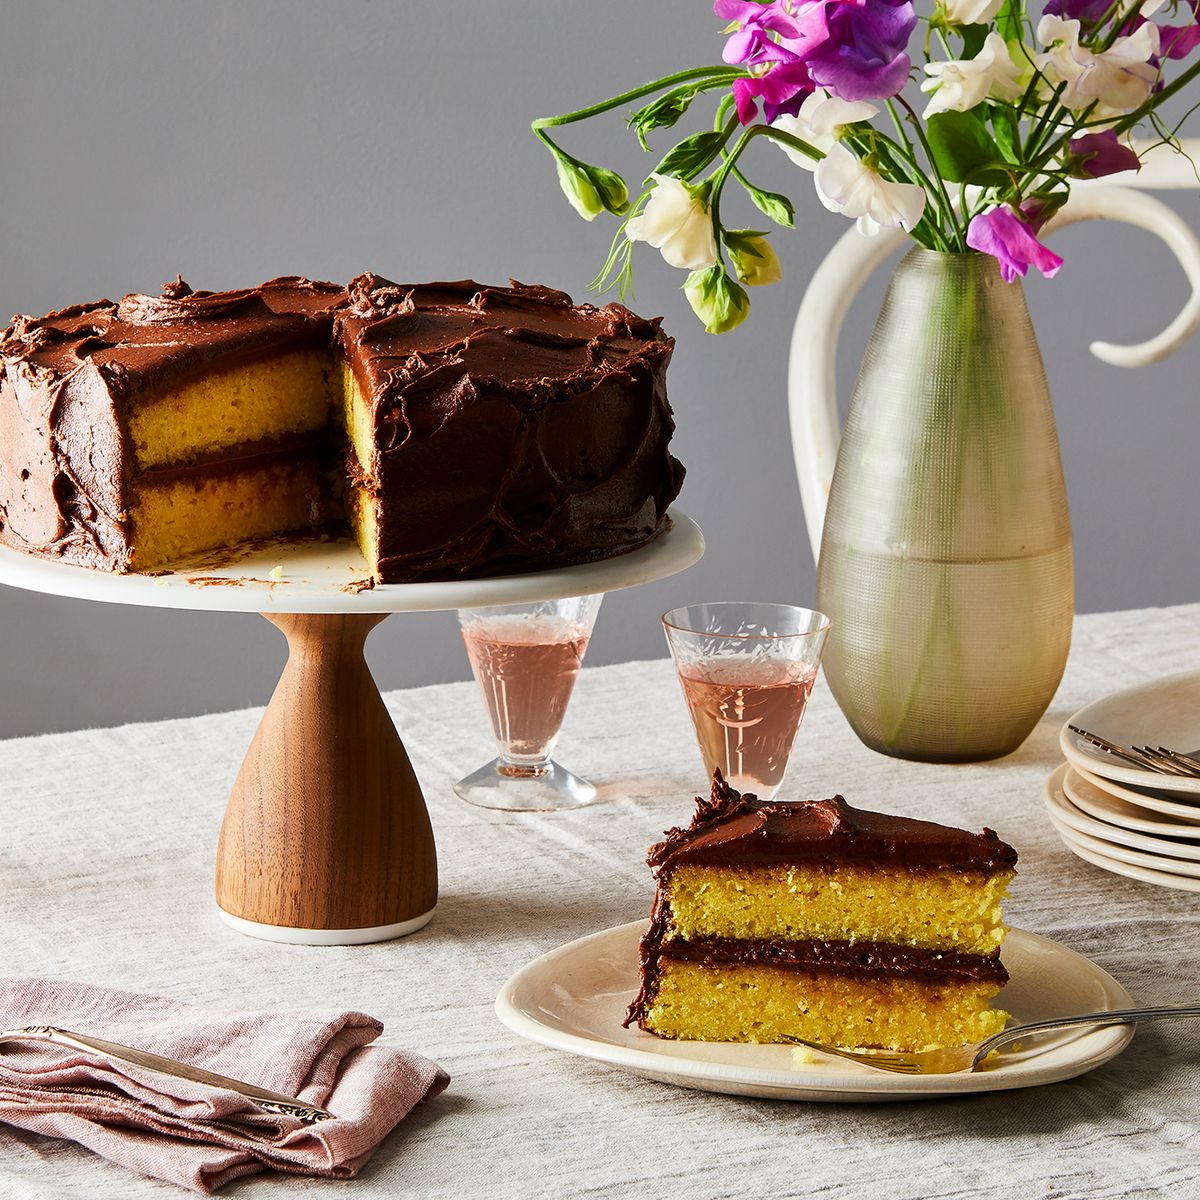 How To Make A Box Cake Taste Like A Wedding Cake.The Best Yellow Cake Borrows A Trick From The Box